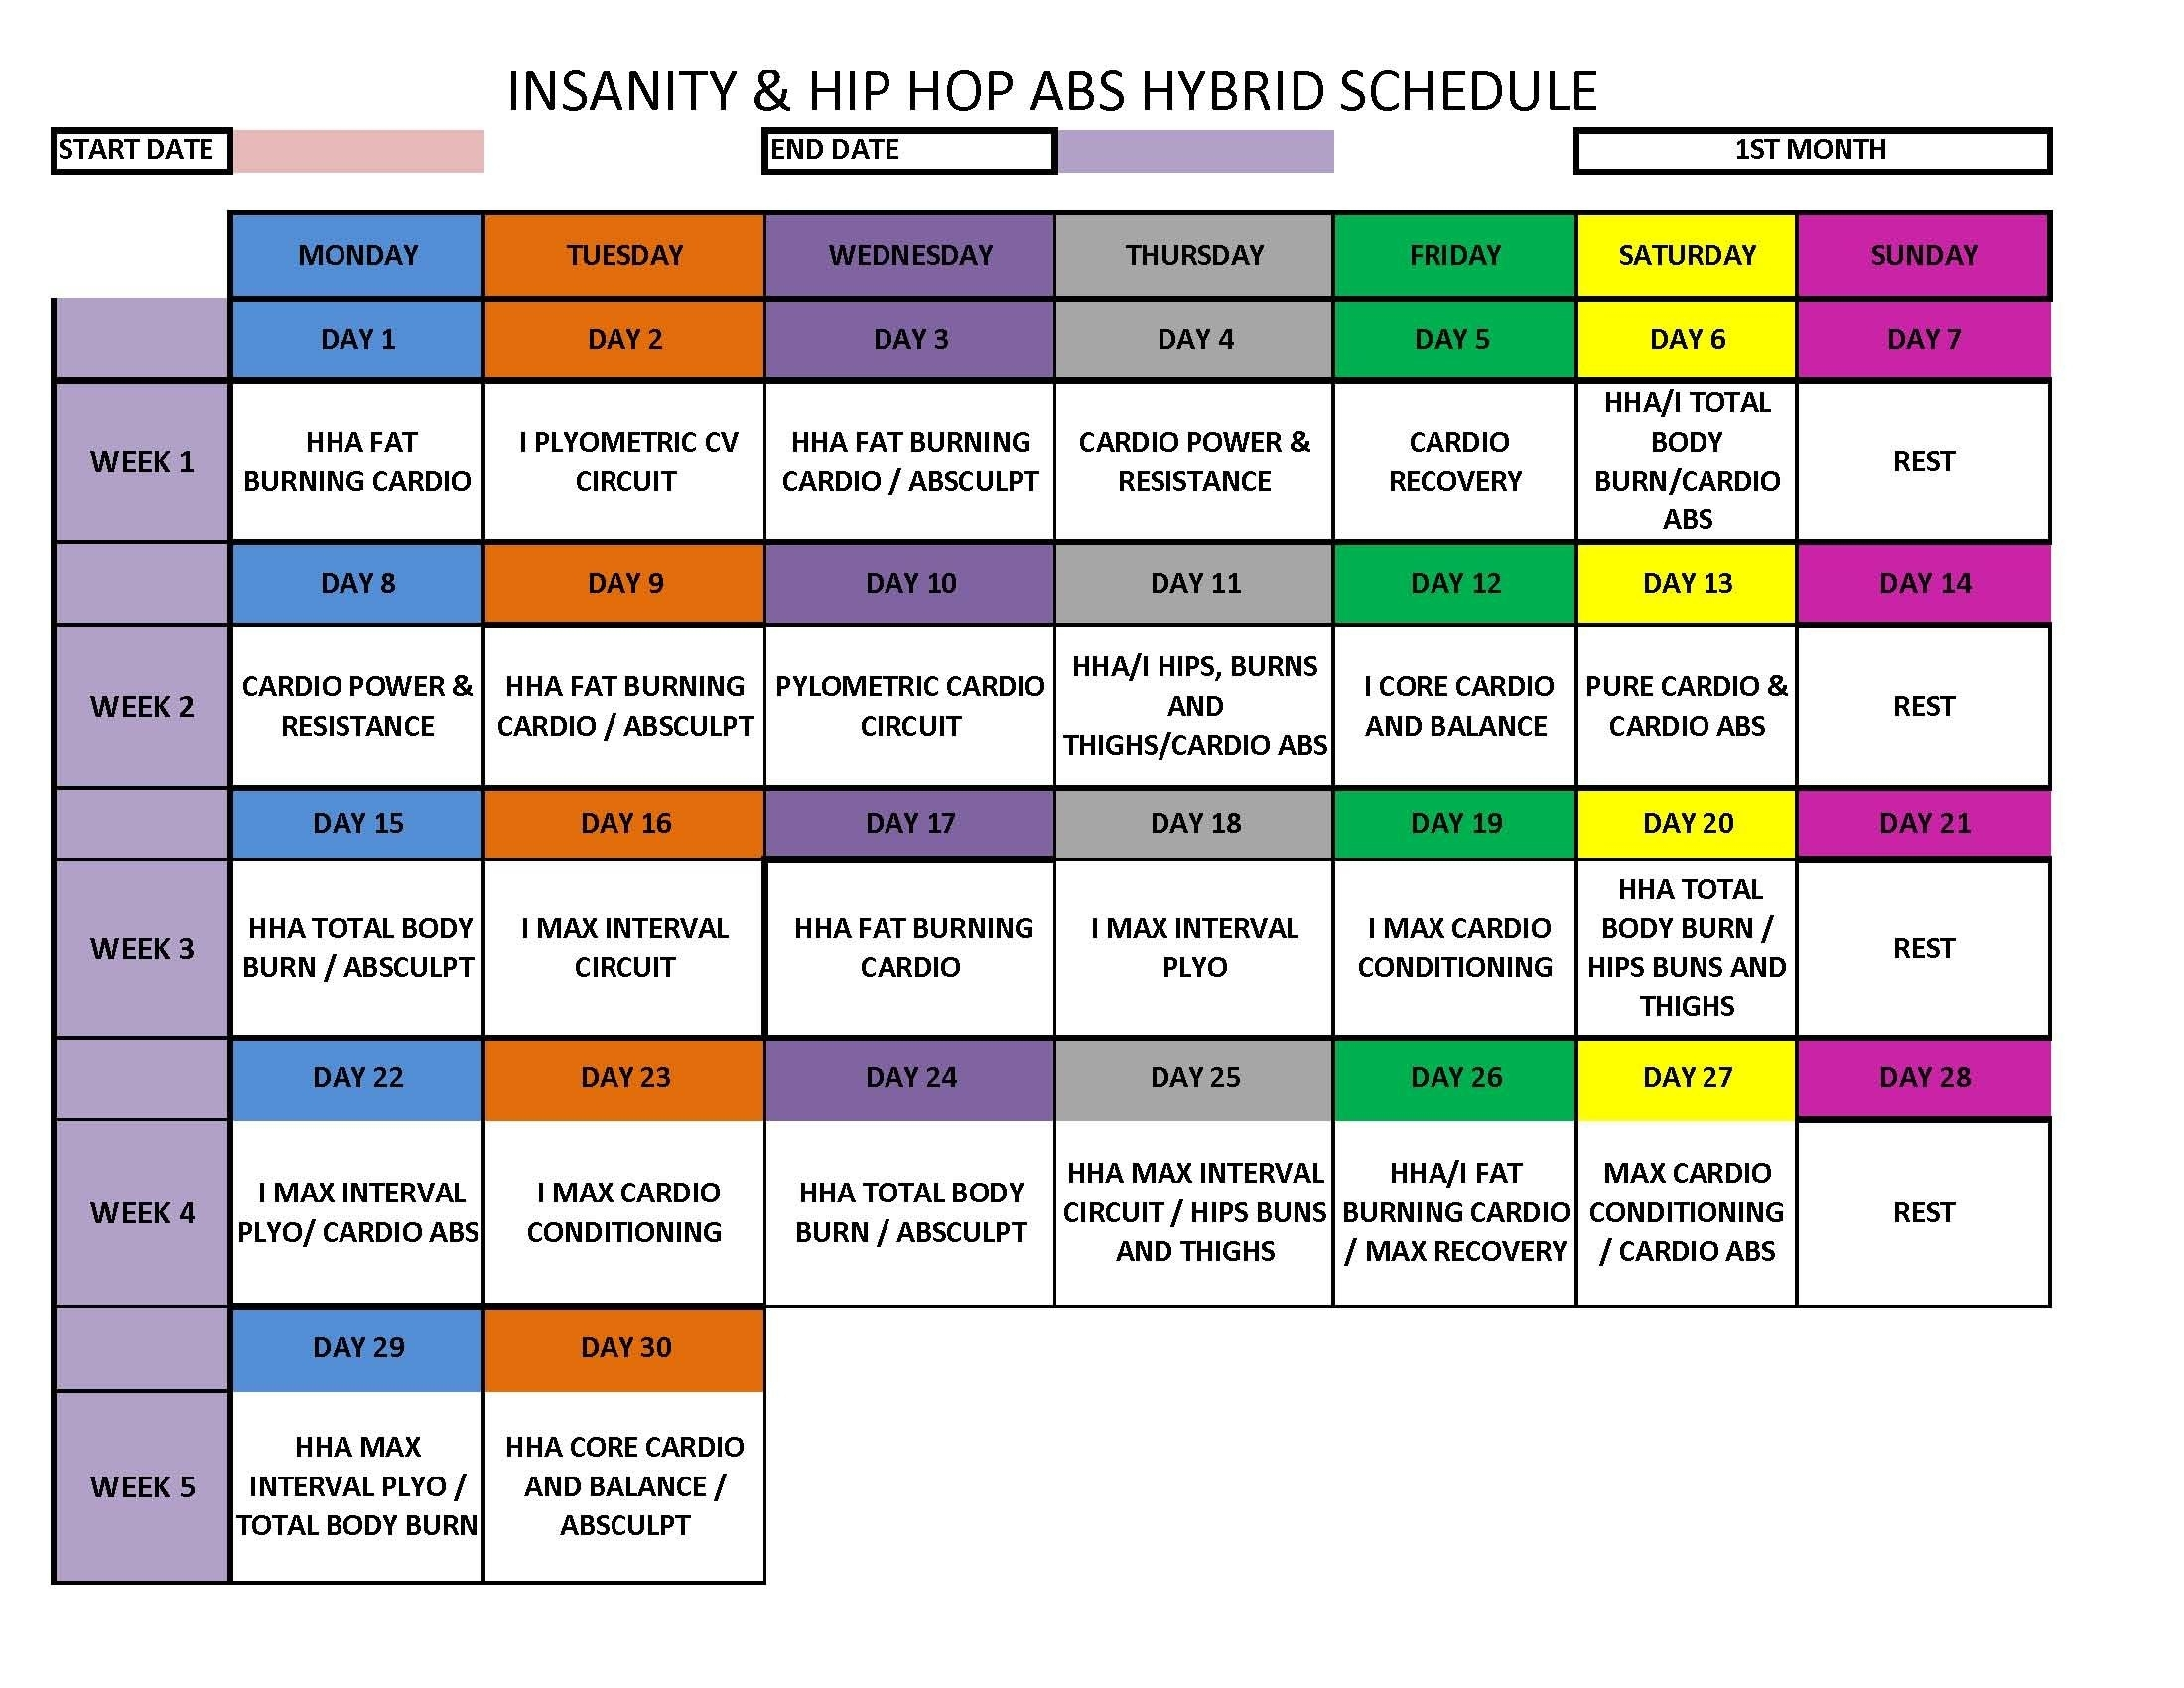 Insanity - Hip Hop Abs Hybrid Schedule | Insanity | Hip Hop Abs for Shaun T Hip Hop Abs Schedule